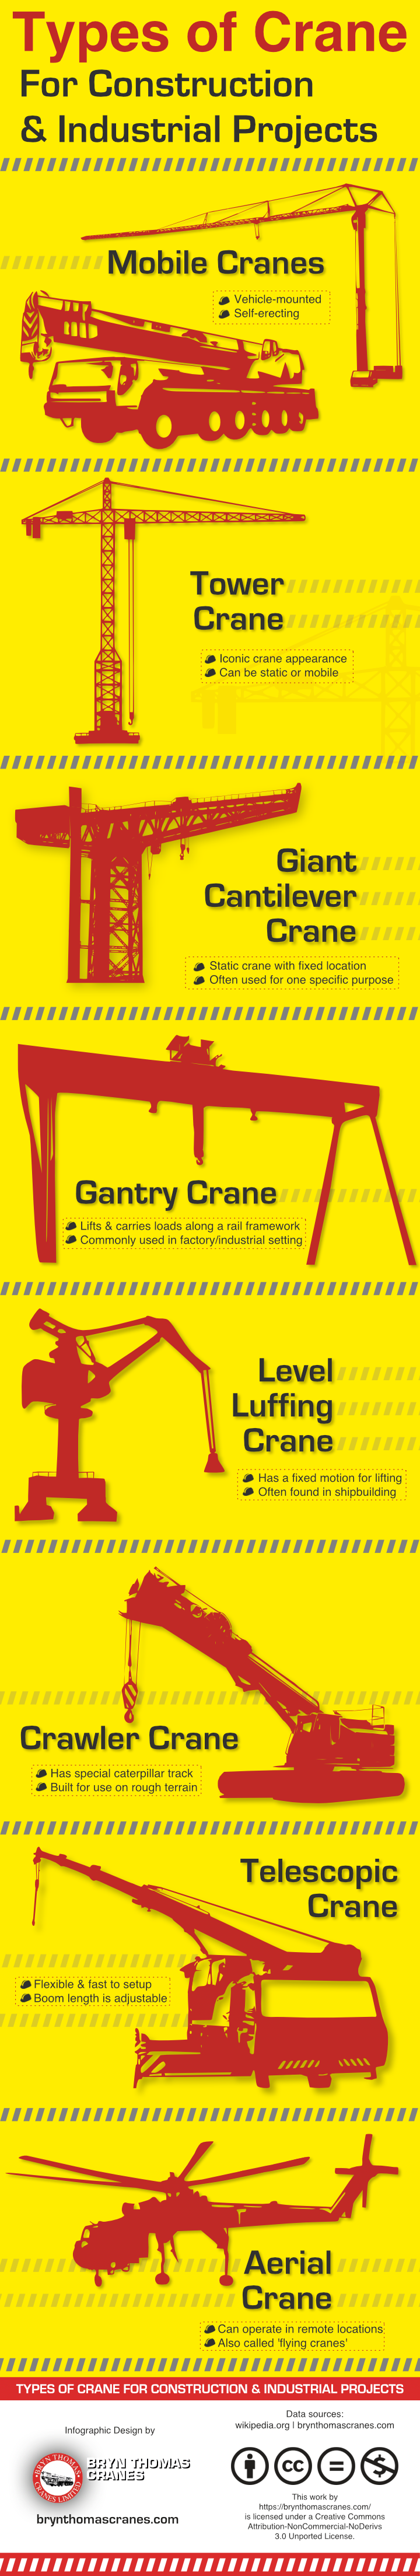 What Is A Crane? Types Of Cranes For Construction